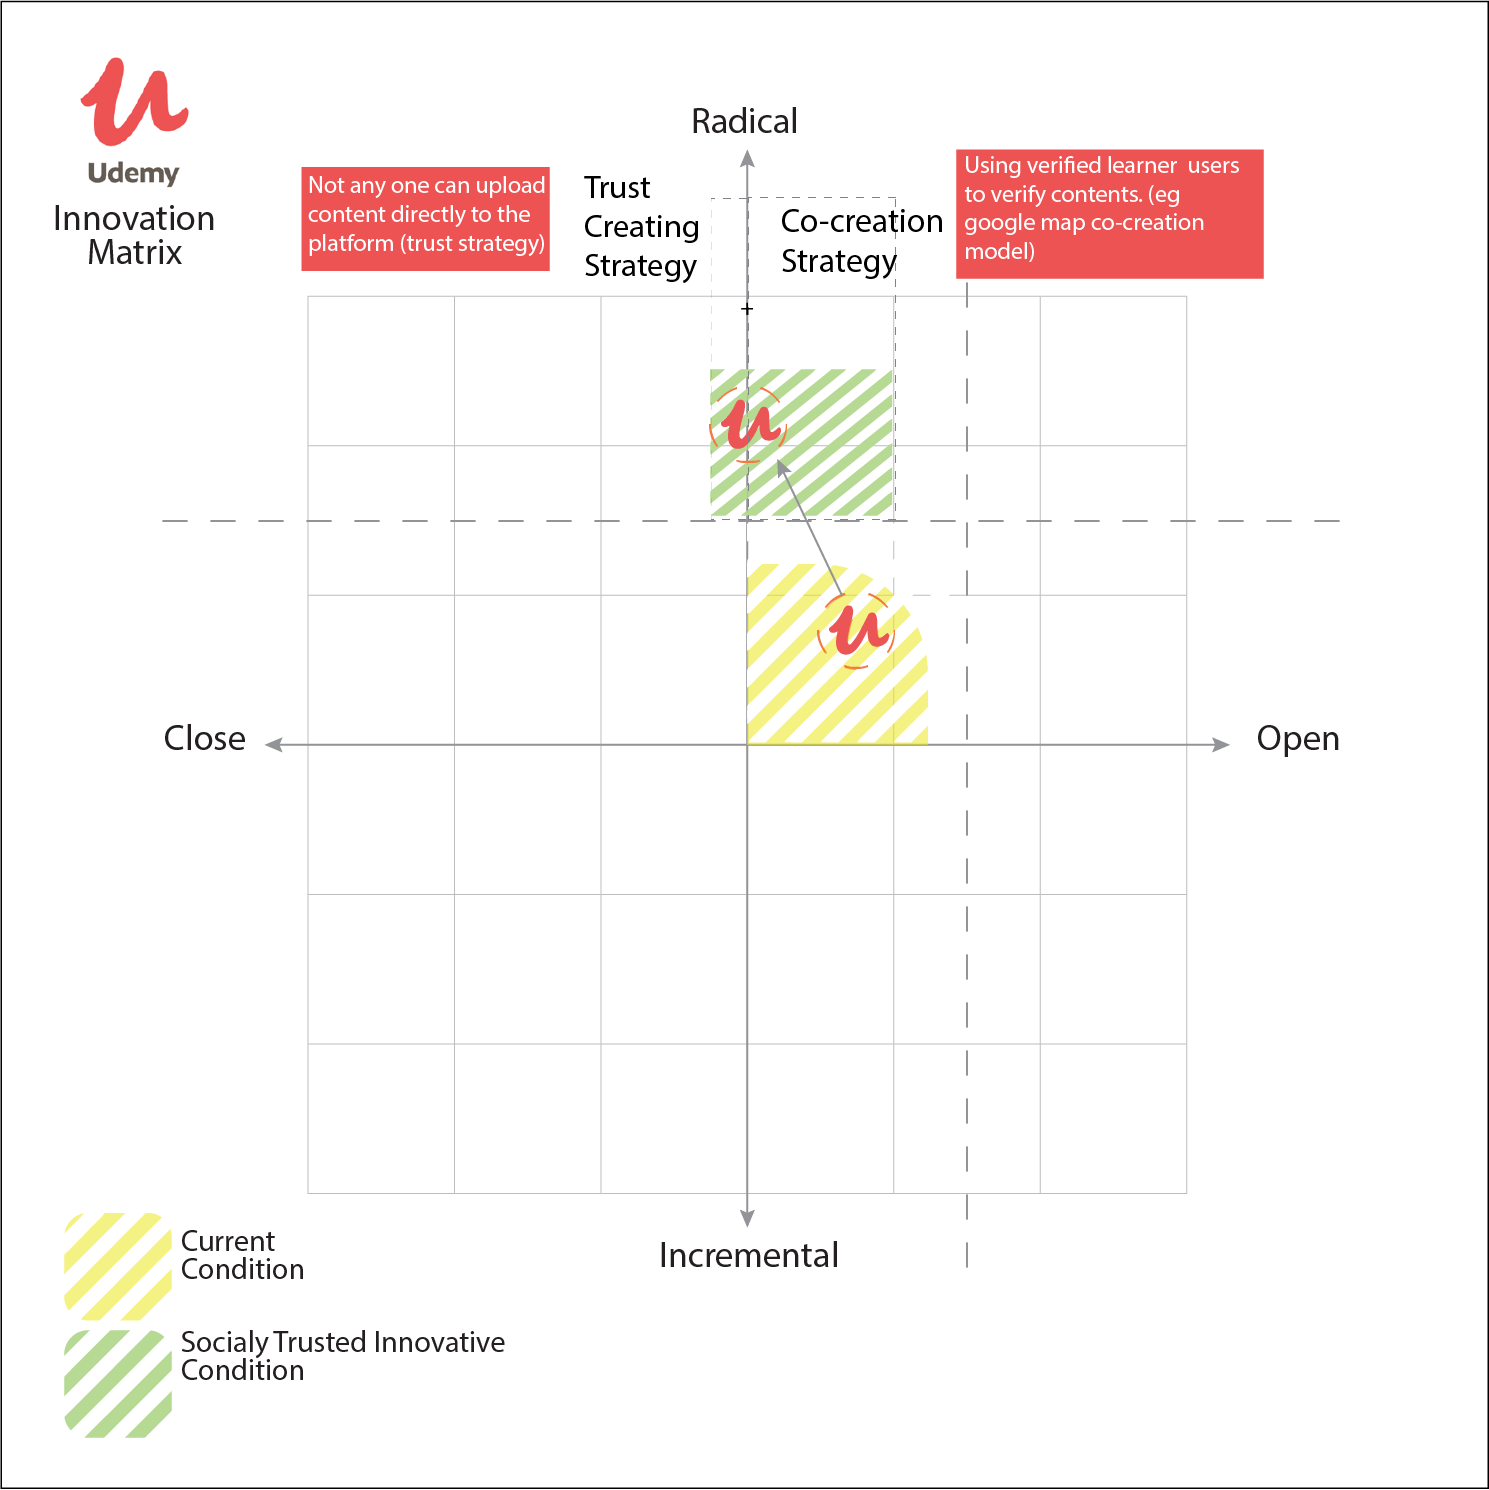 Udemy Innovation matrix